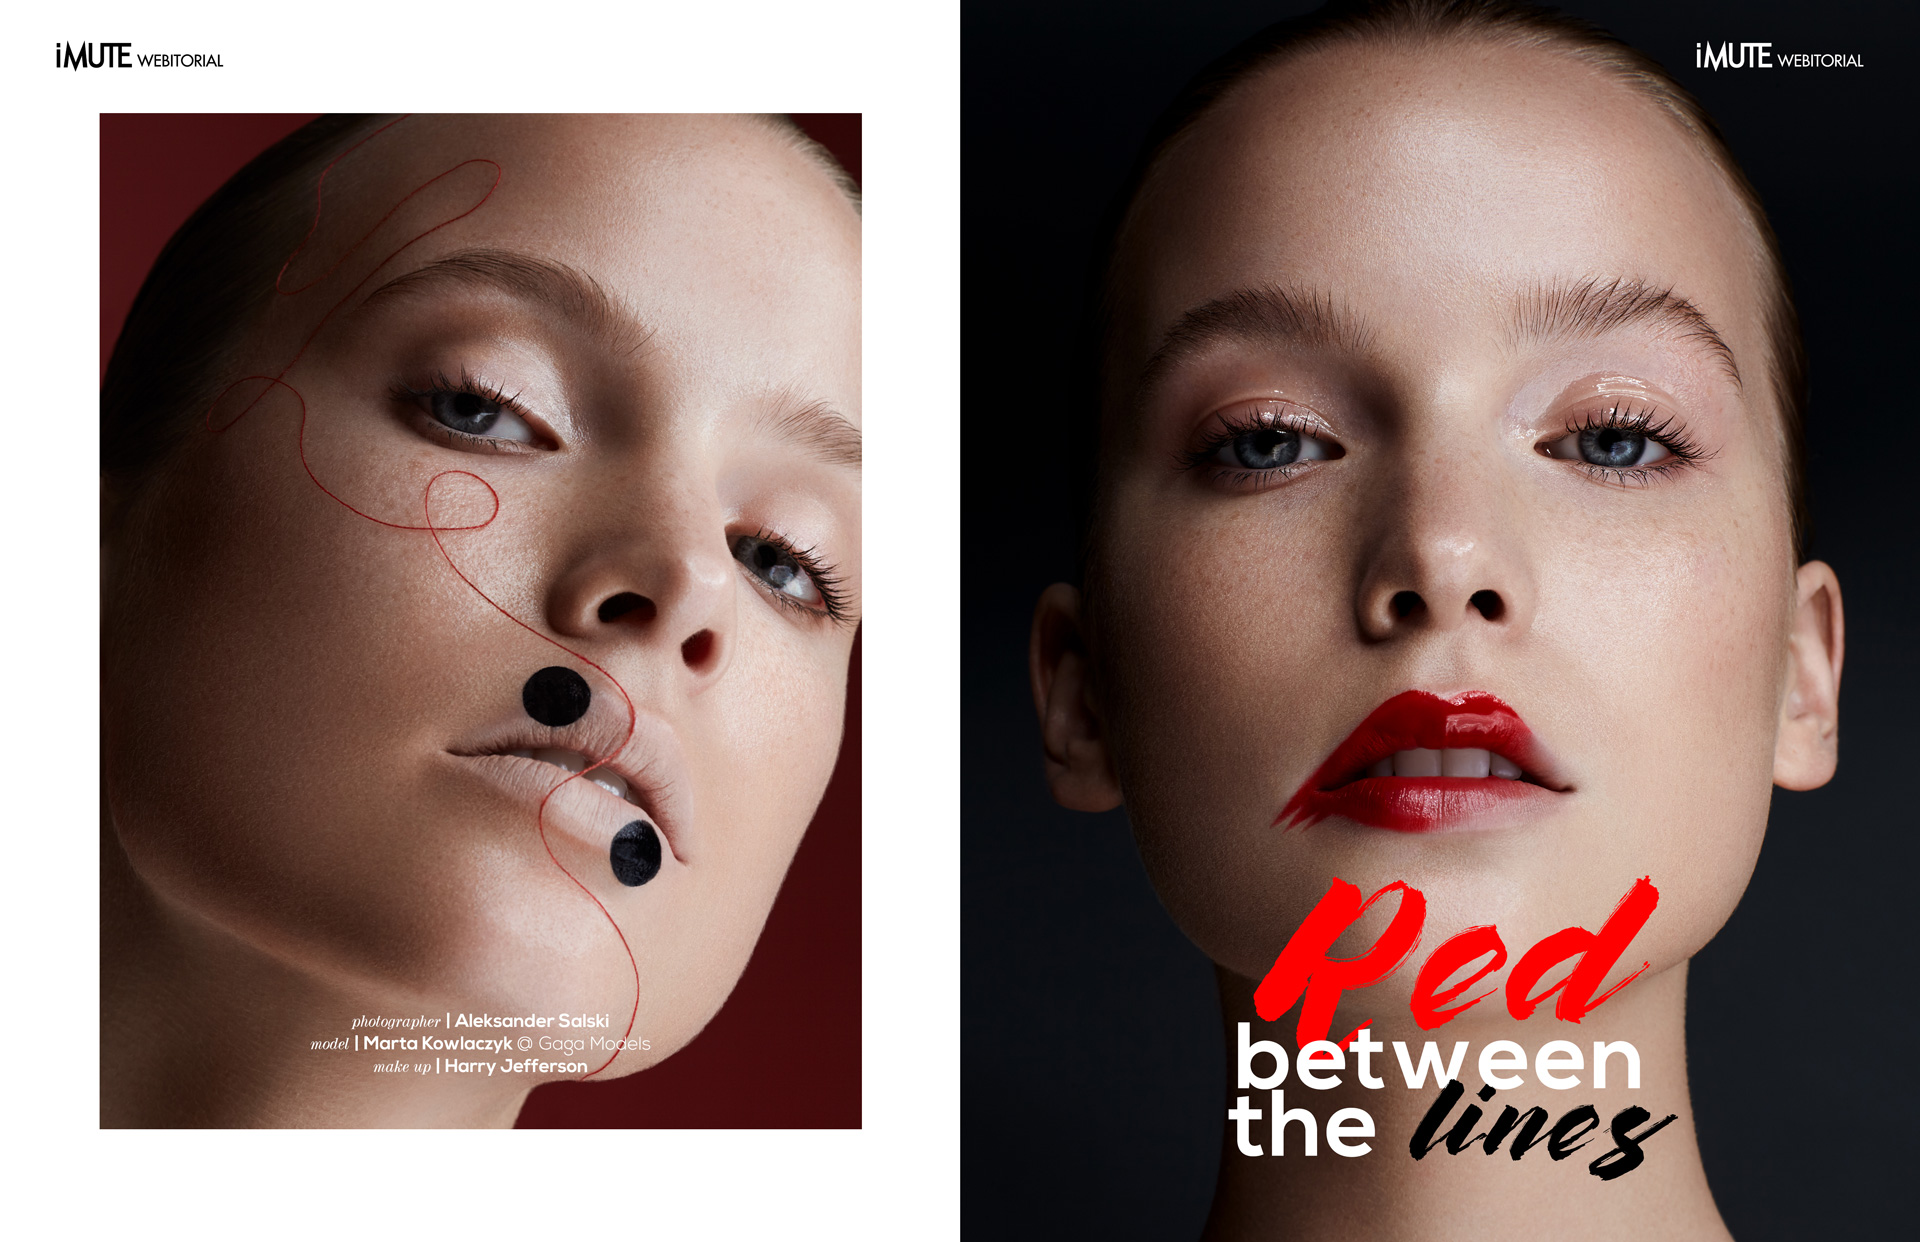 Red between the lines webitorial for iMute Magazine Photographer | Aleksander Salski Model | Marta Kowlaczyk @ Gaga Models Make up | Harry Jefferson